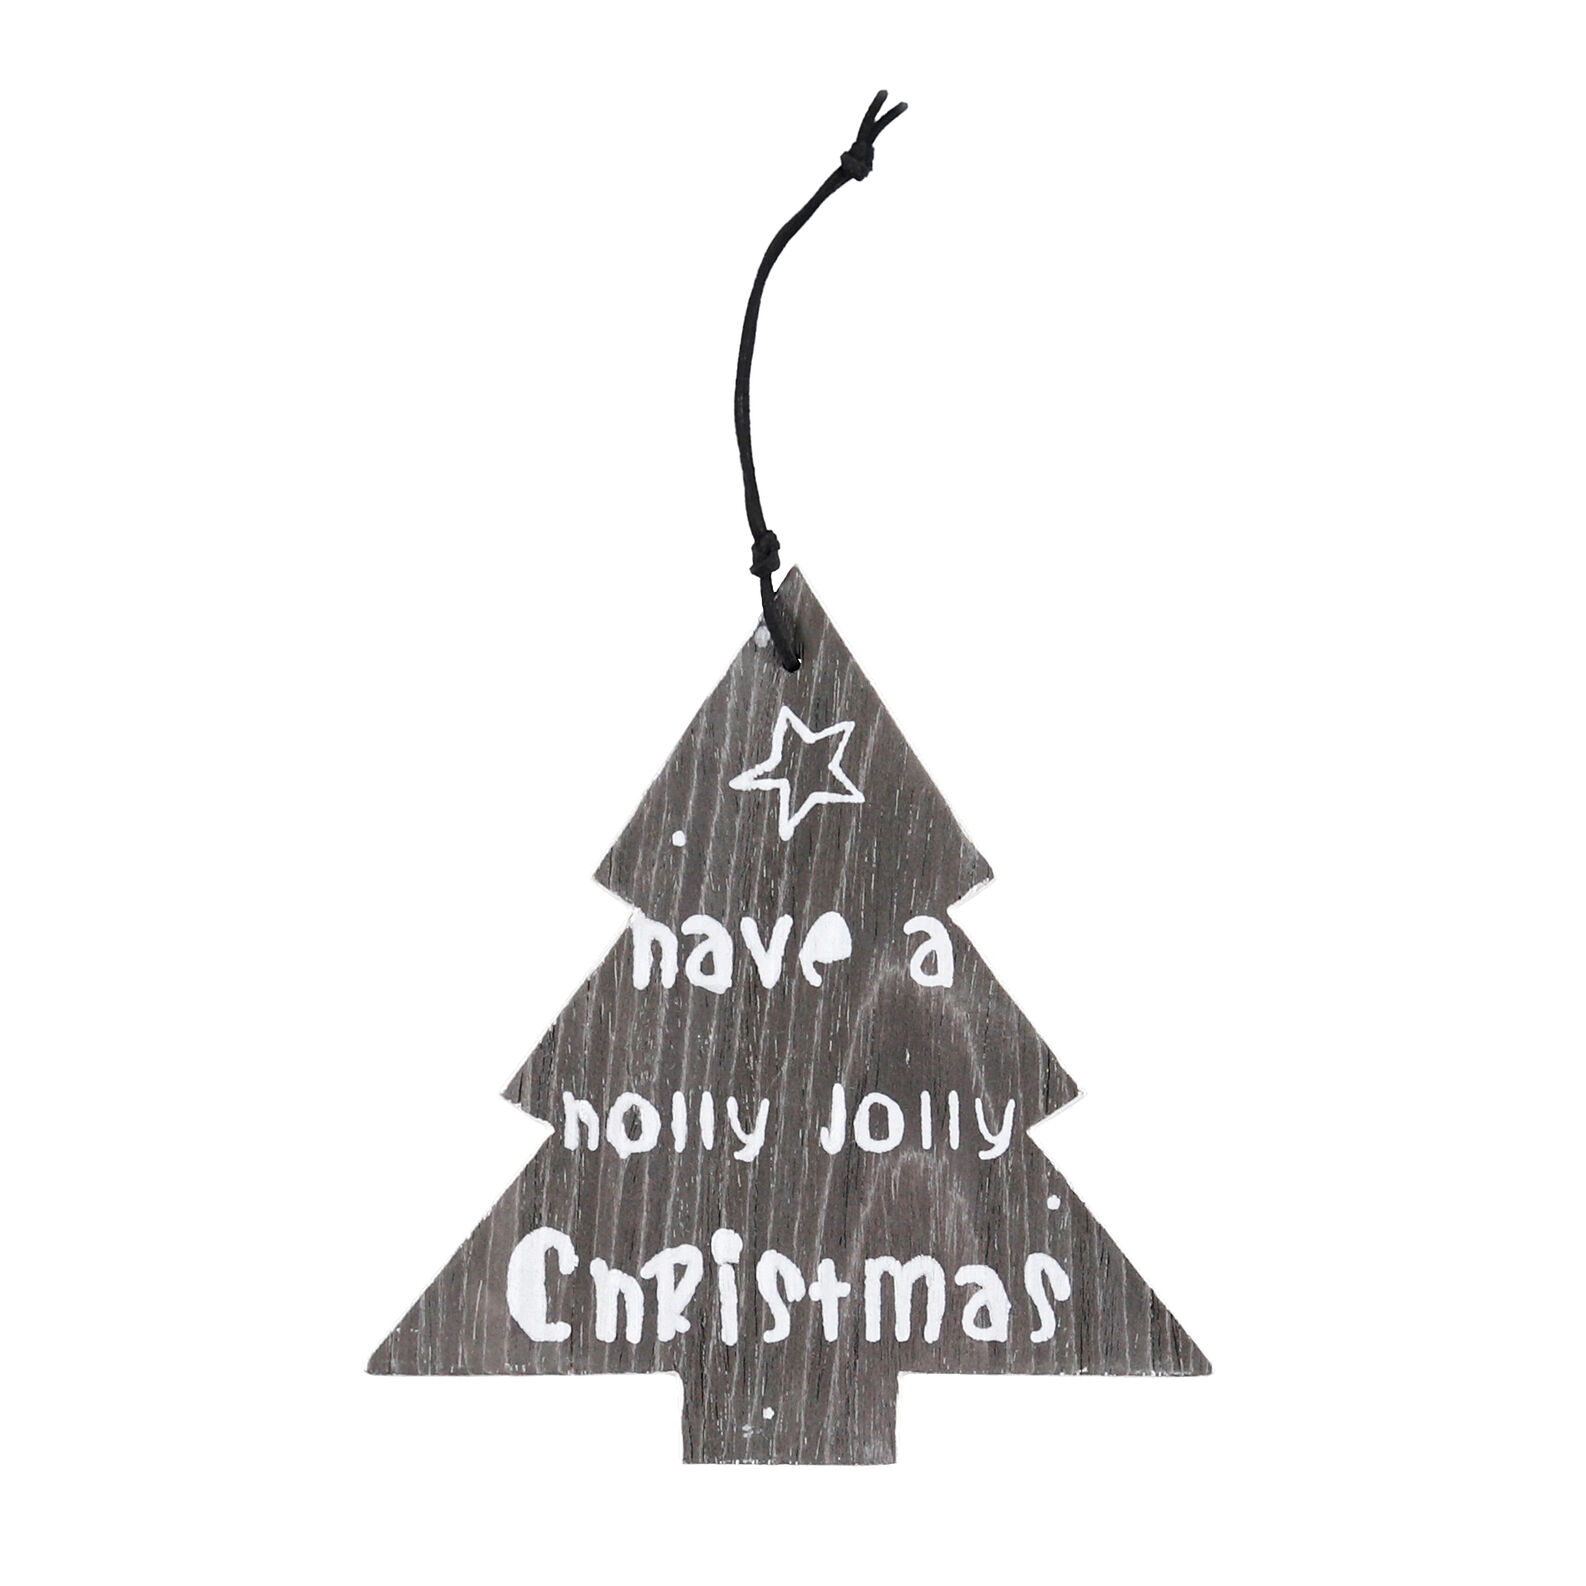 Wooden Christmas tree with lettering